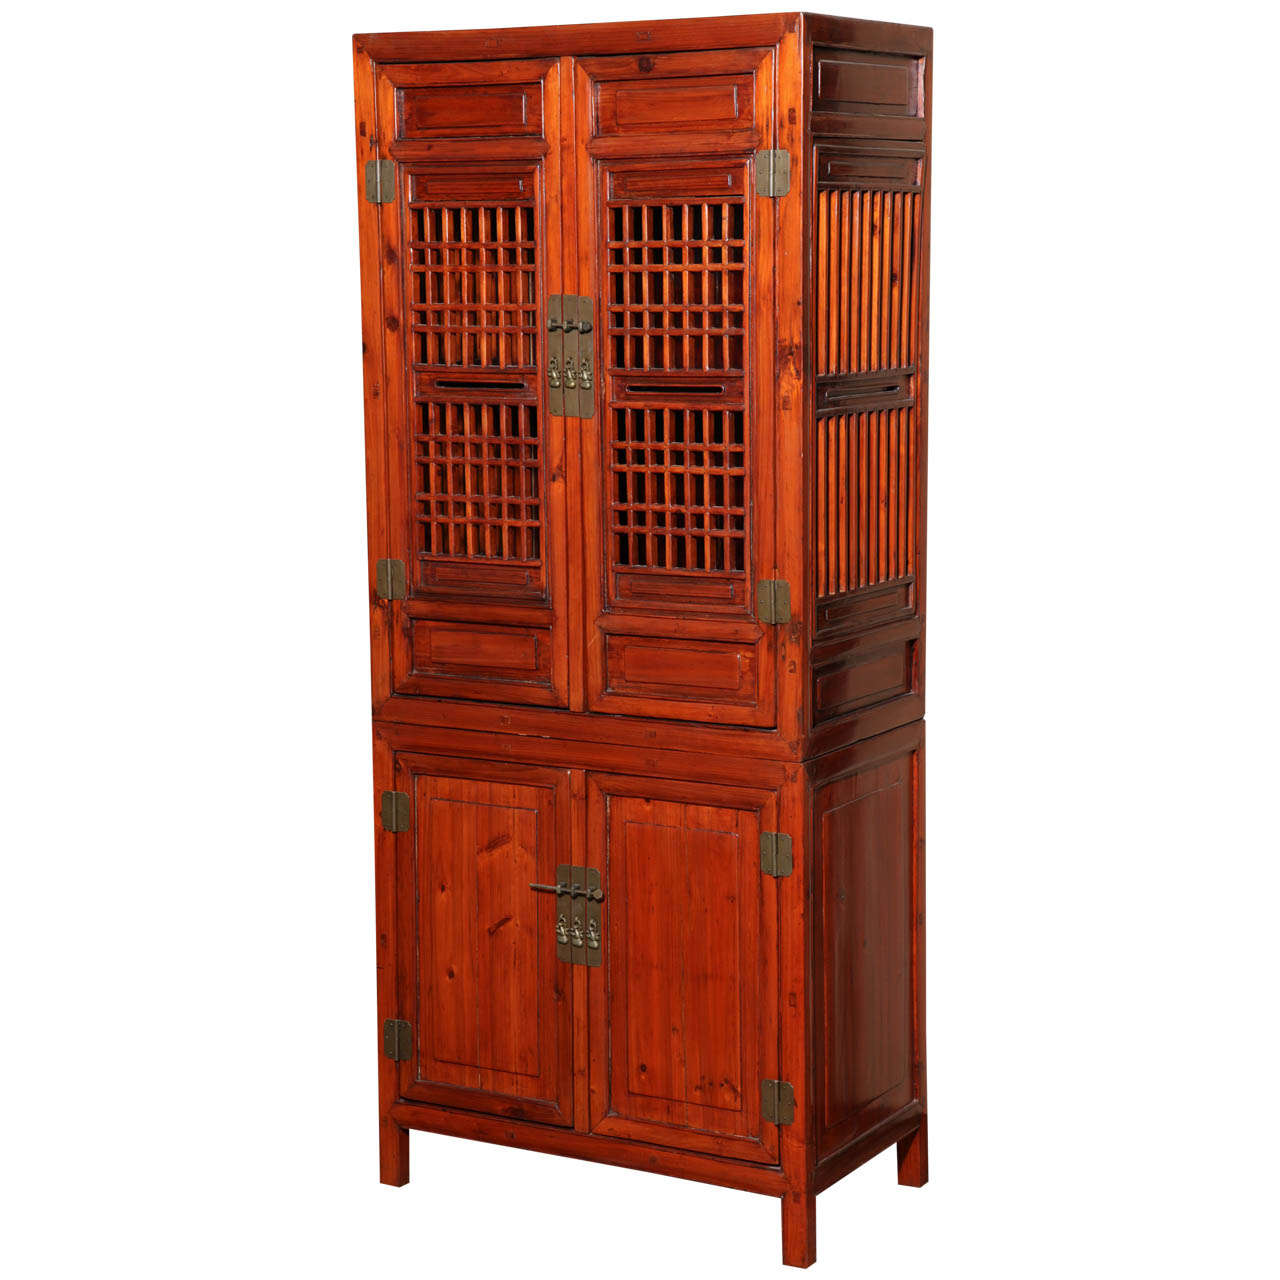 Tall 19th Century Chinese Kitchen Cabinet With Fretwork Upper Doors For At 1stdibs